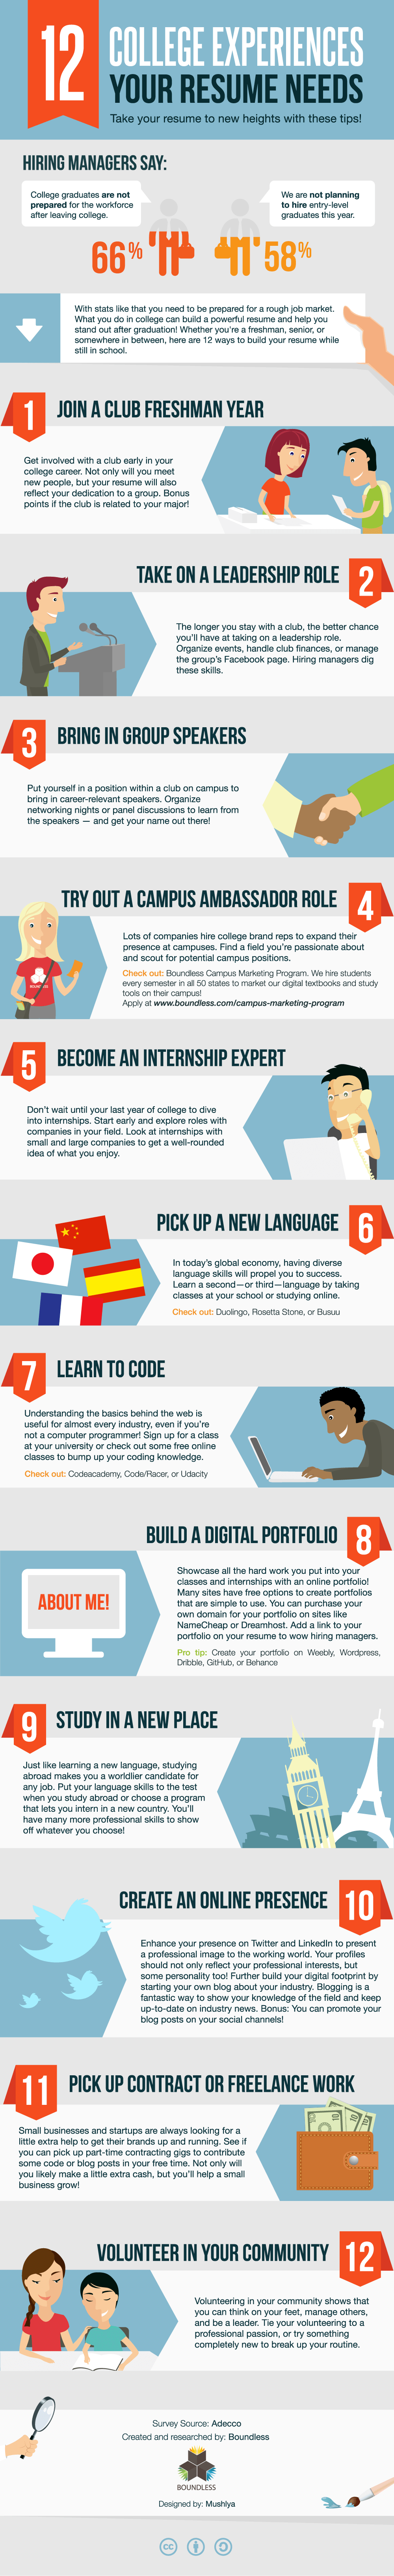 12 Ways To Build Your Resume In College Infographic E Learning